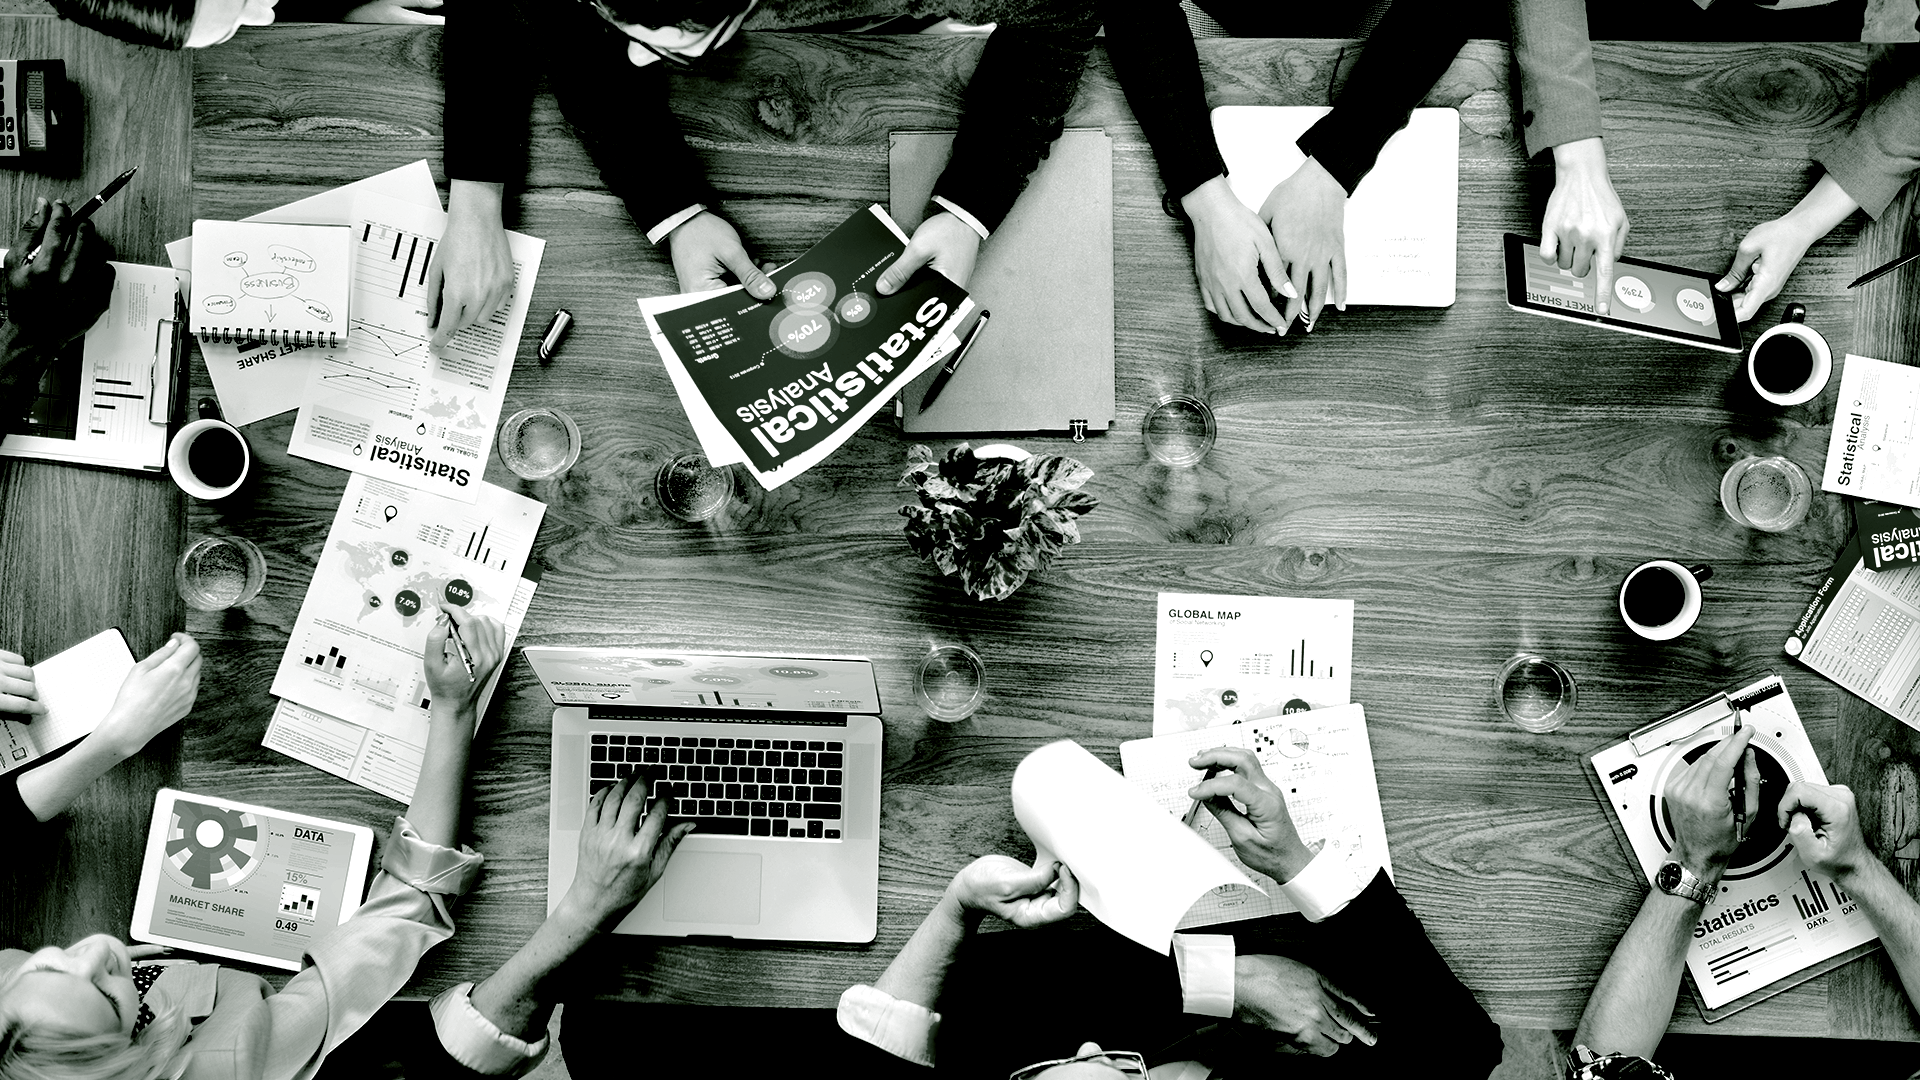 5 Types of B2B Sales Enablement Content You Should Be Creating